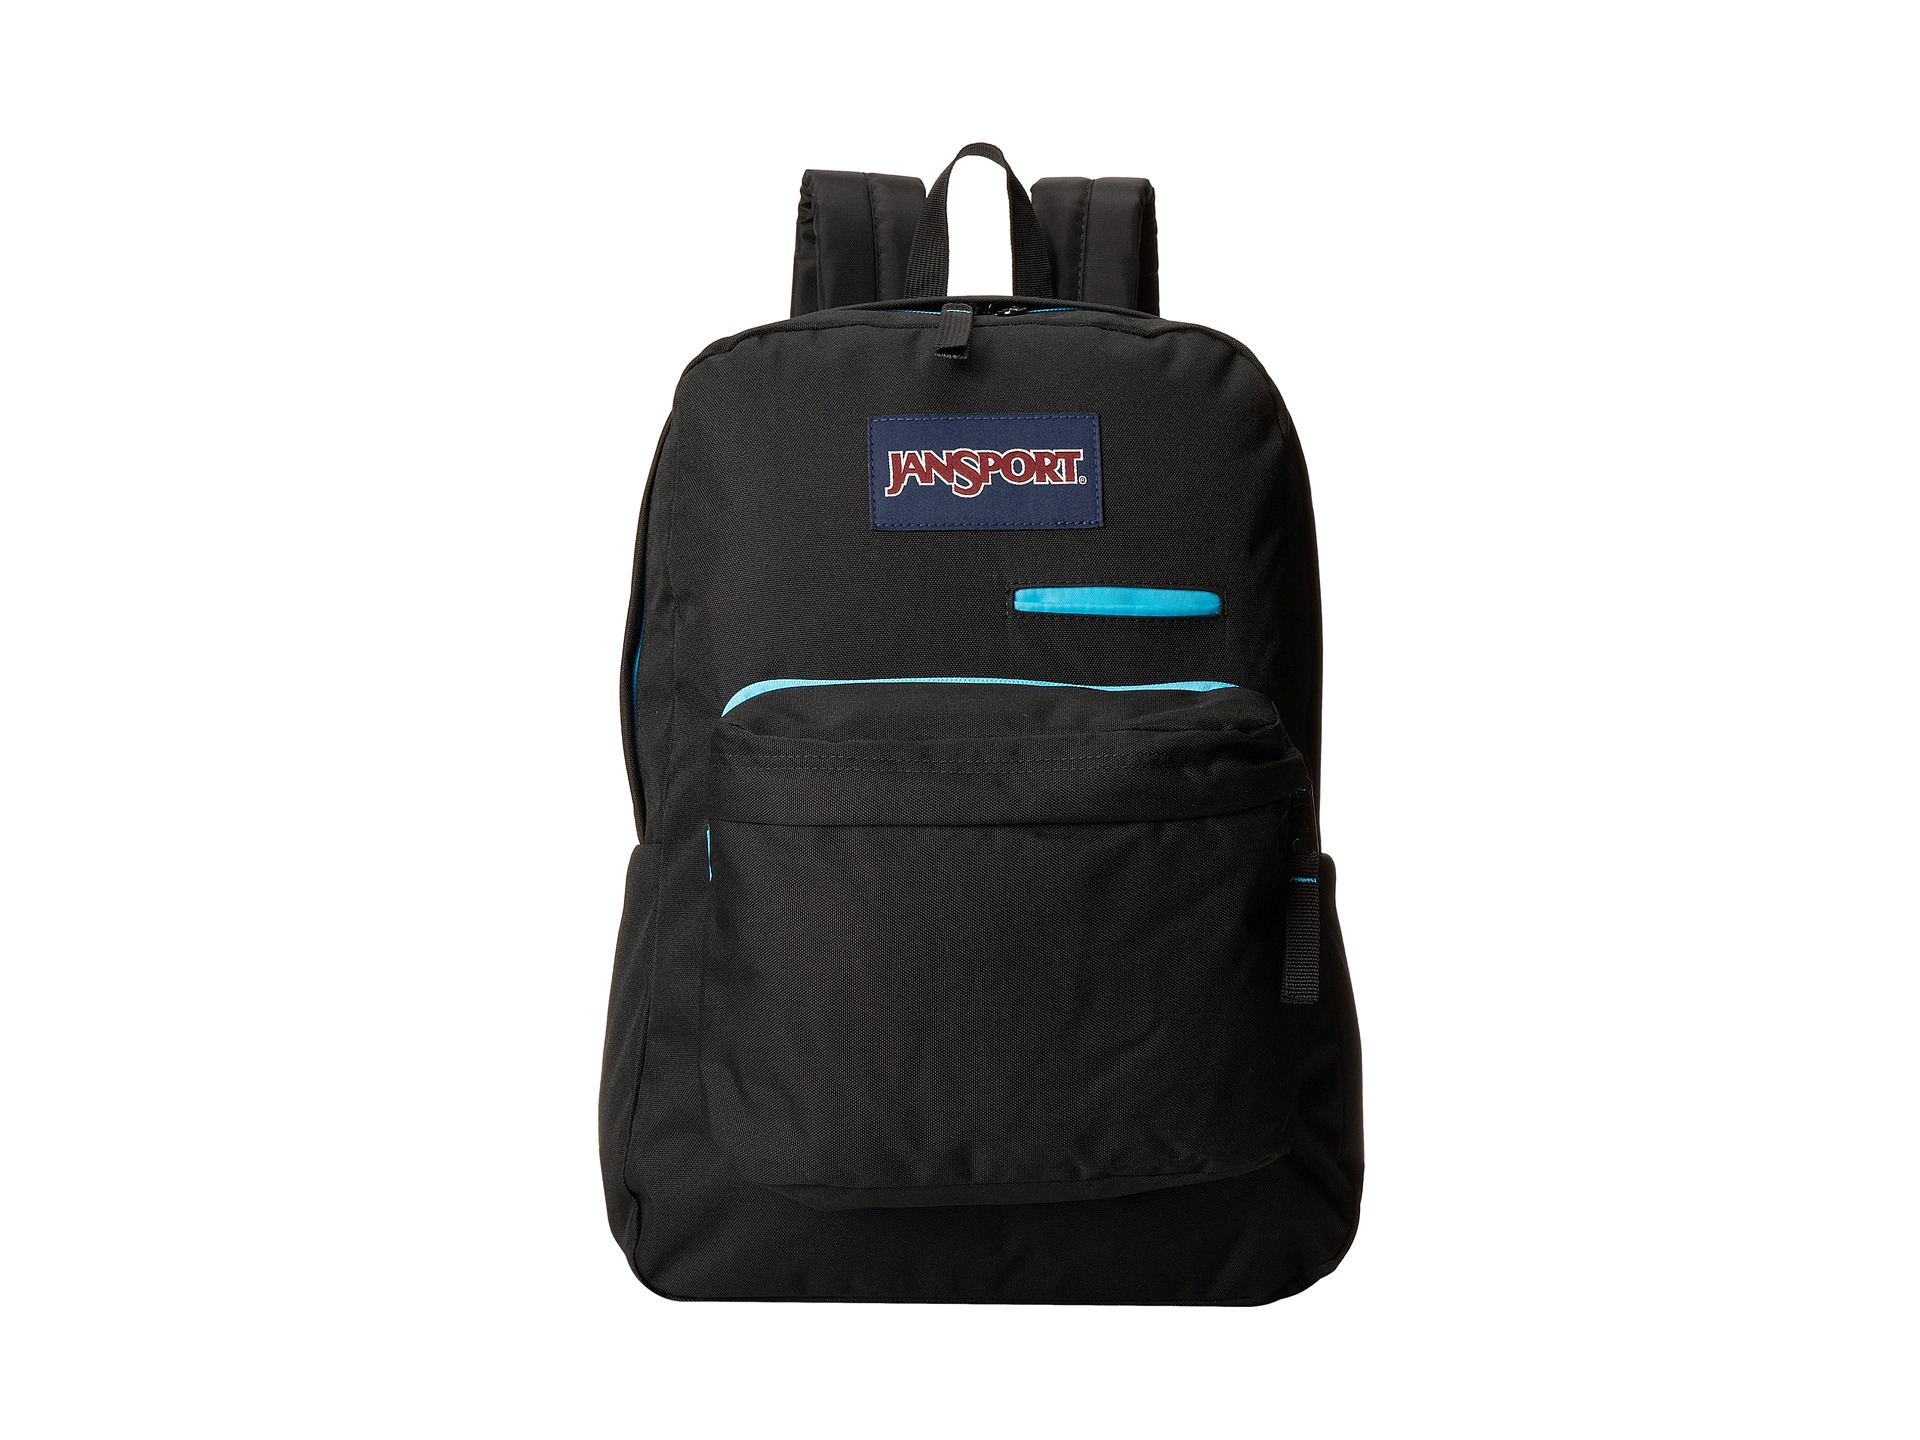 FREE Shipping on eligible orders. Some colors are Prime eligible. out of 5 stars Product Description suede leather bottom, The JanSport Right Pack Digital Edition comes with modern digital JanSport Digibreak Laptop Backpack. by JanSport. $ - $ $ 21 $ 51 Prime.